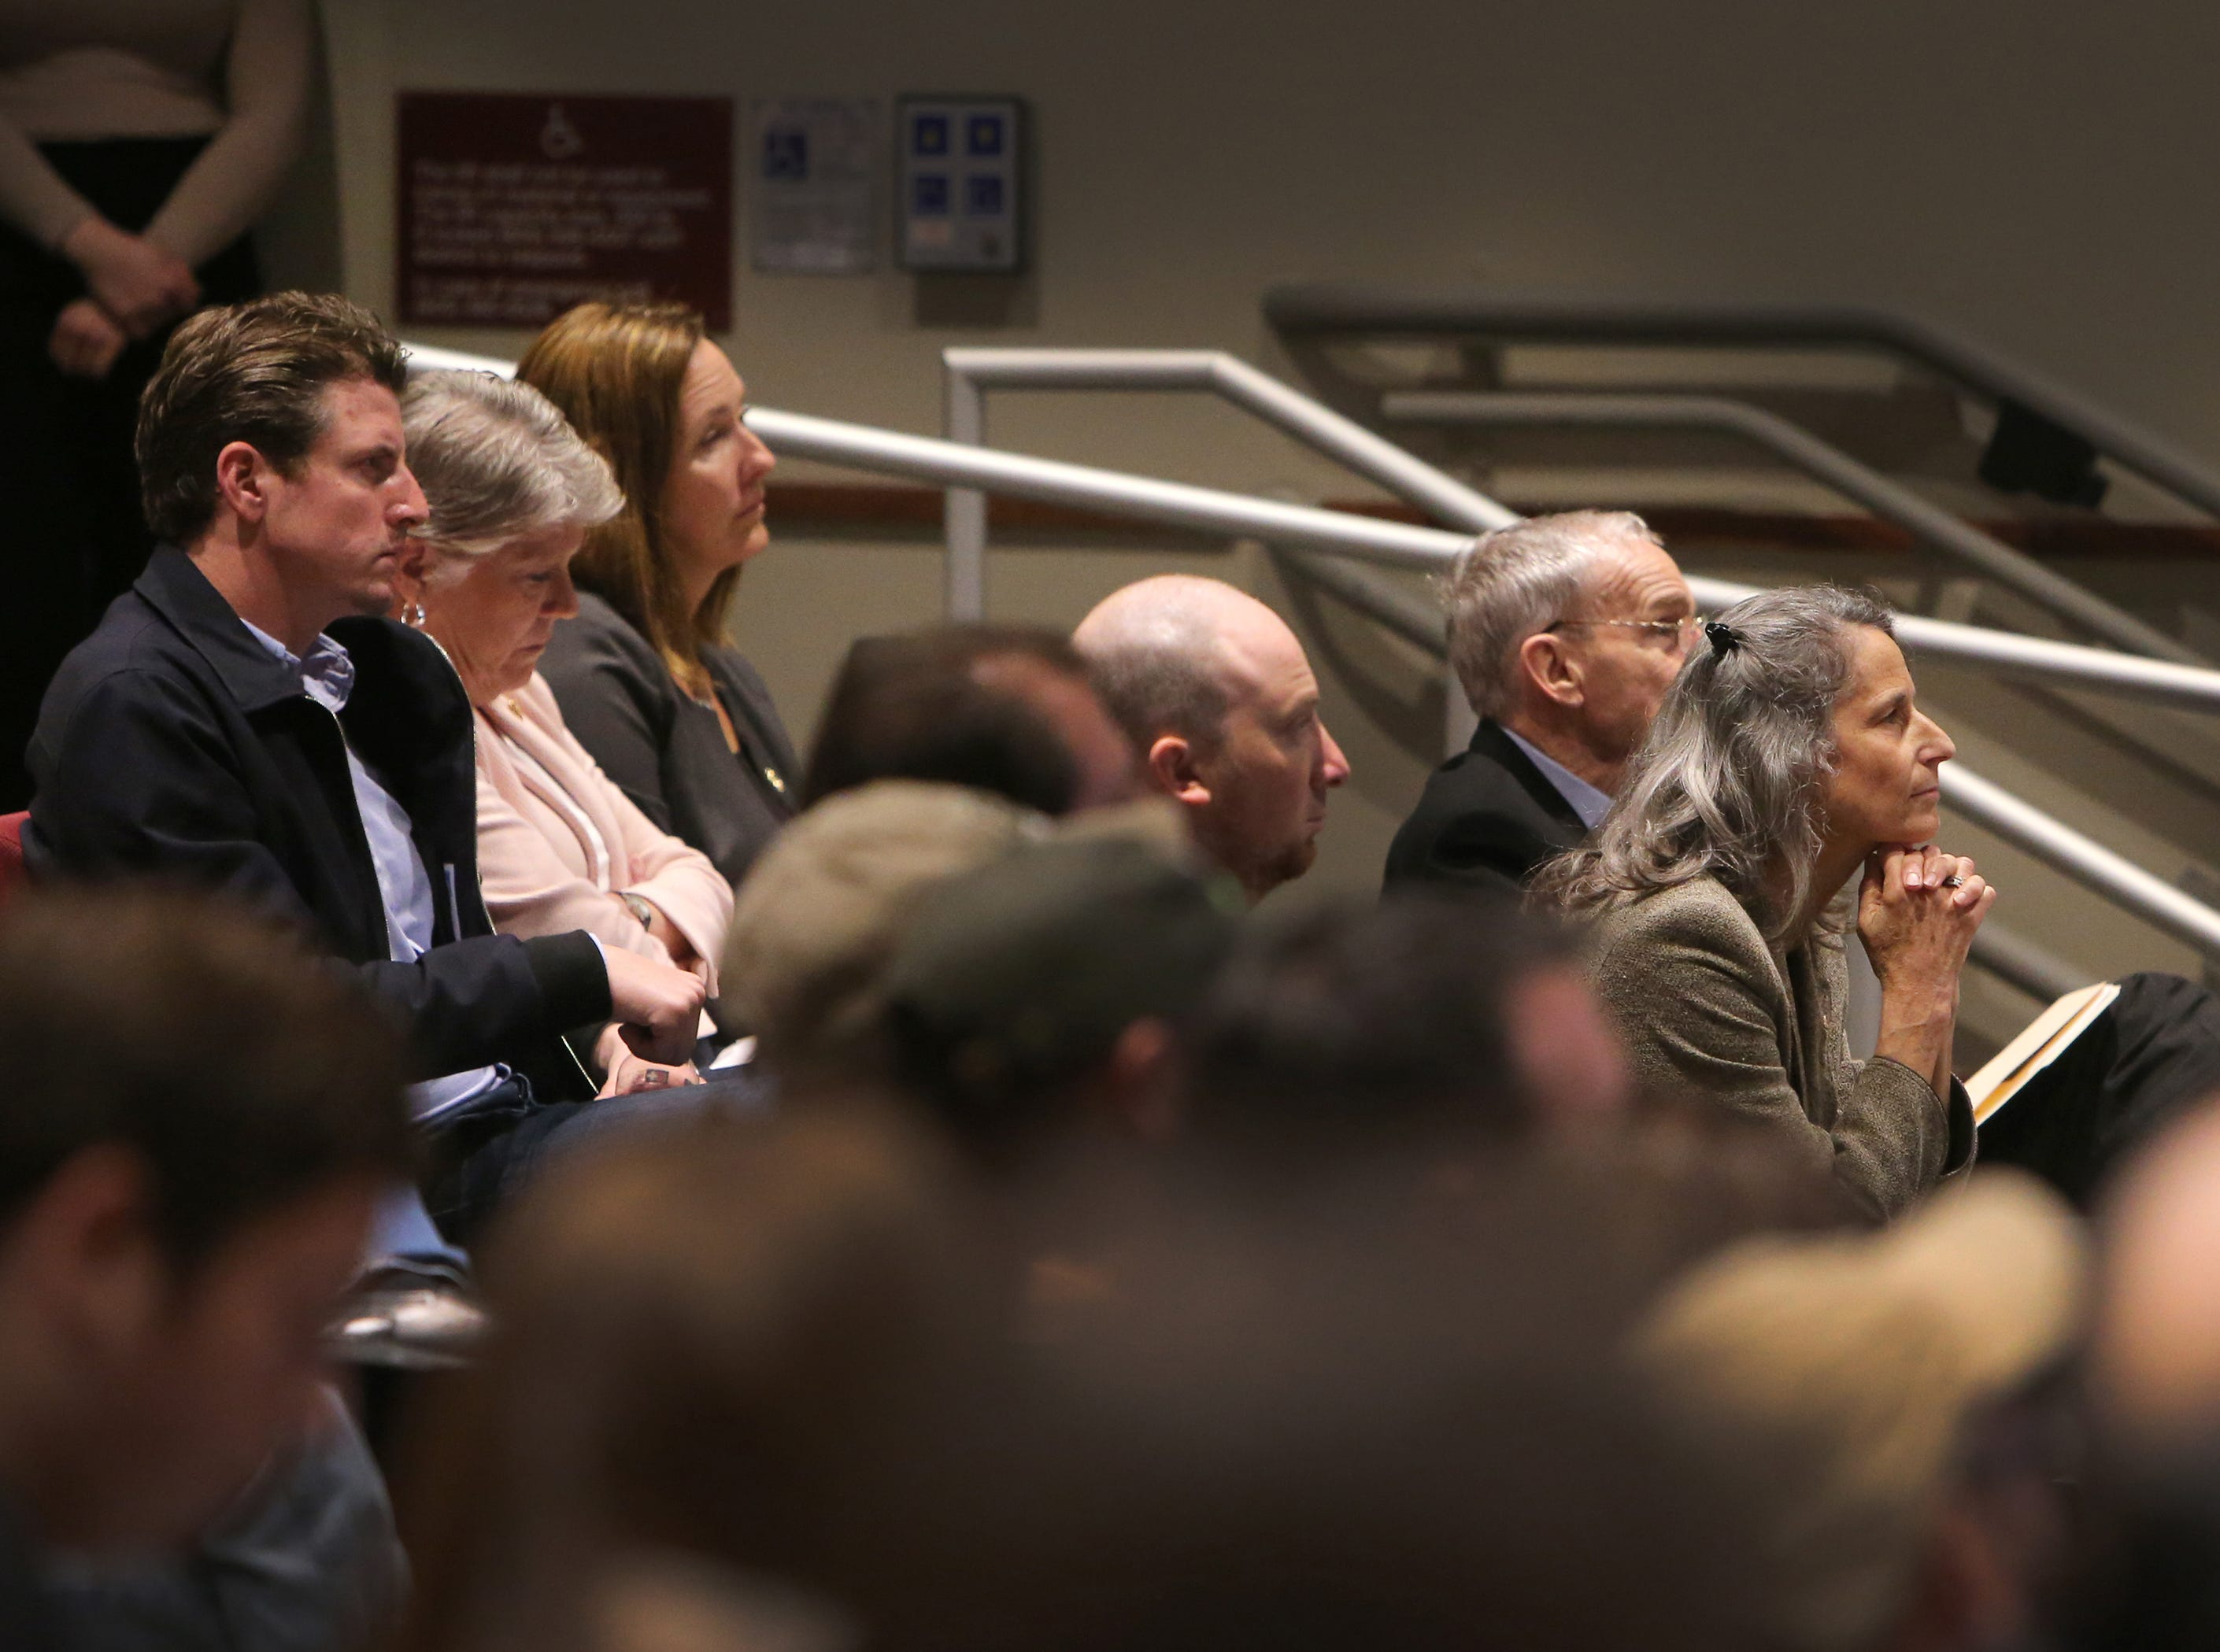 Those who attended a forum on gun violence Sunday included lawmakers Henry Stern, D-Agoura Hills; Congresswoman Julia Brownley, D-Westlake Village; Assembly member Jacqui Irwin, D-Thousand Oaks; and Ventura County Supervisors Linda Parks and Steve Bennett. The event at Westlake High School drew about 200 people.